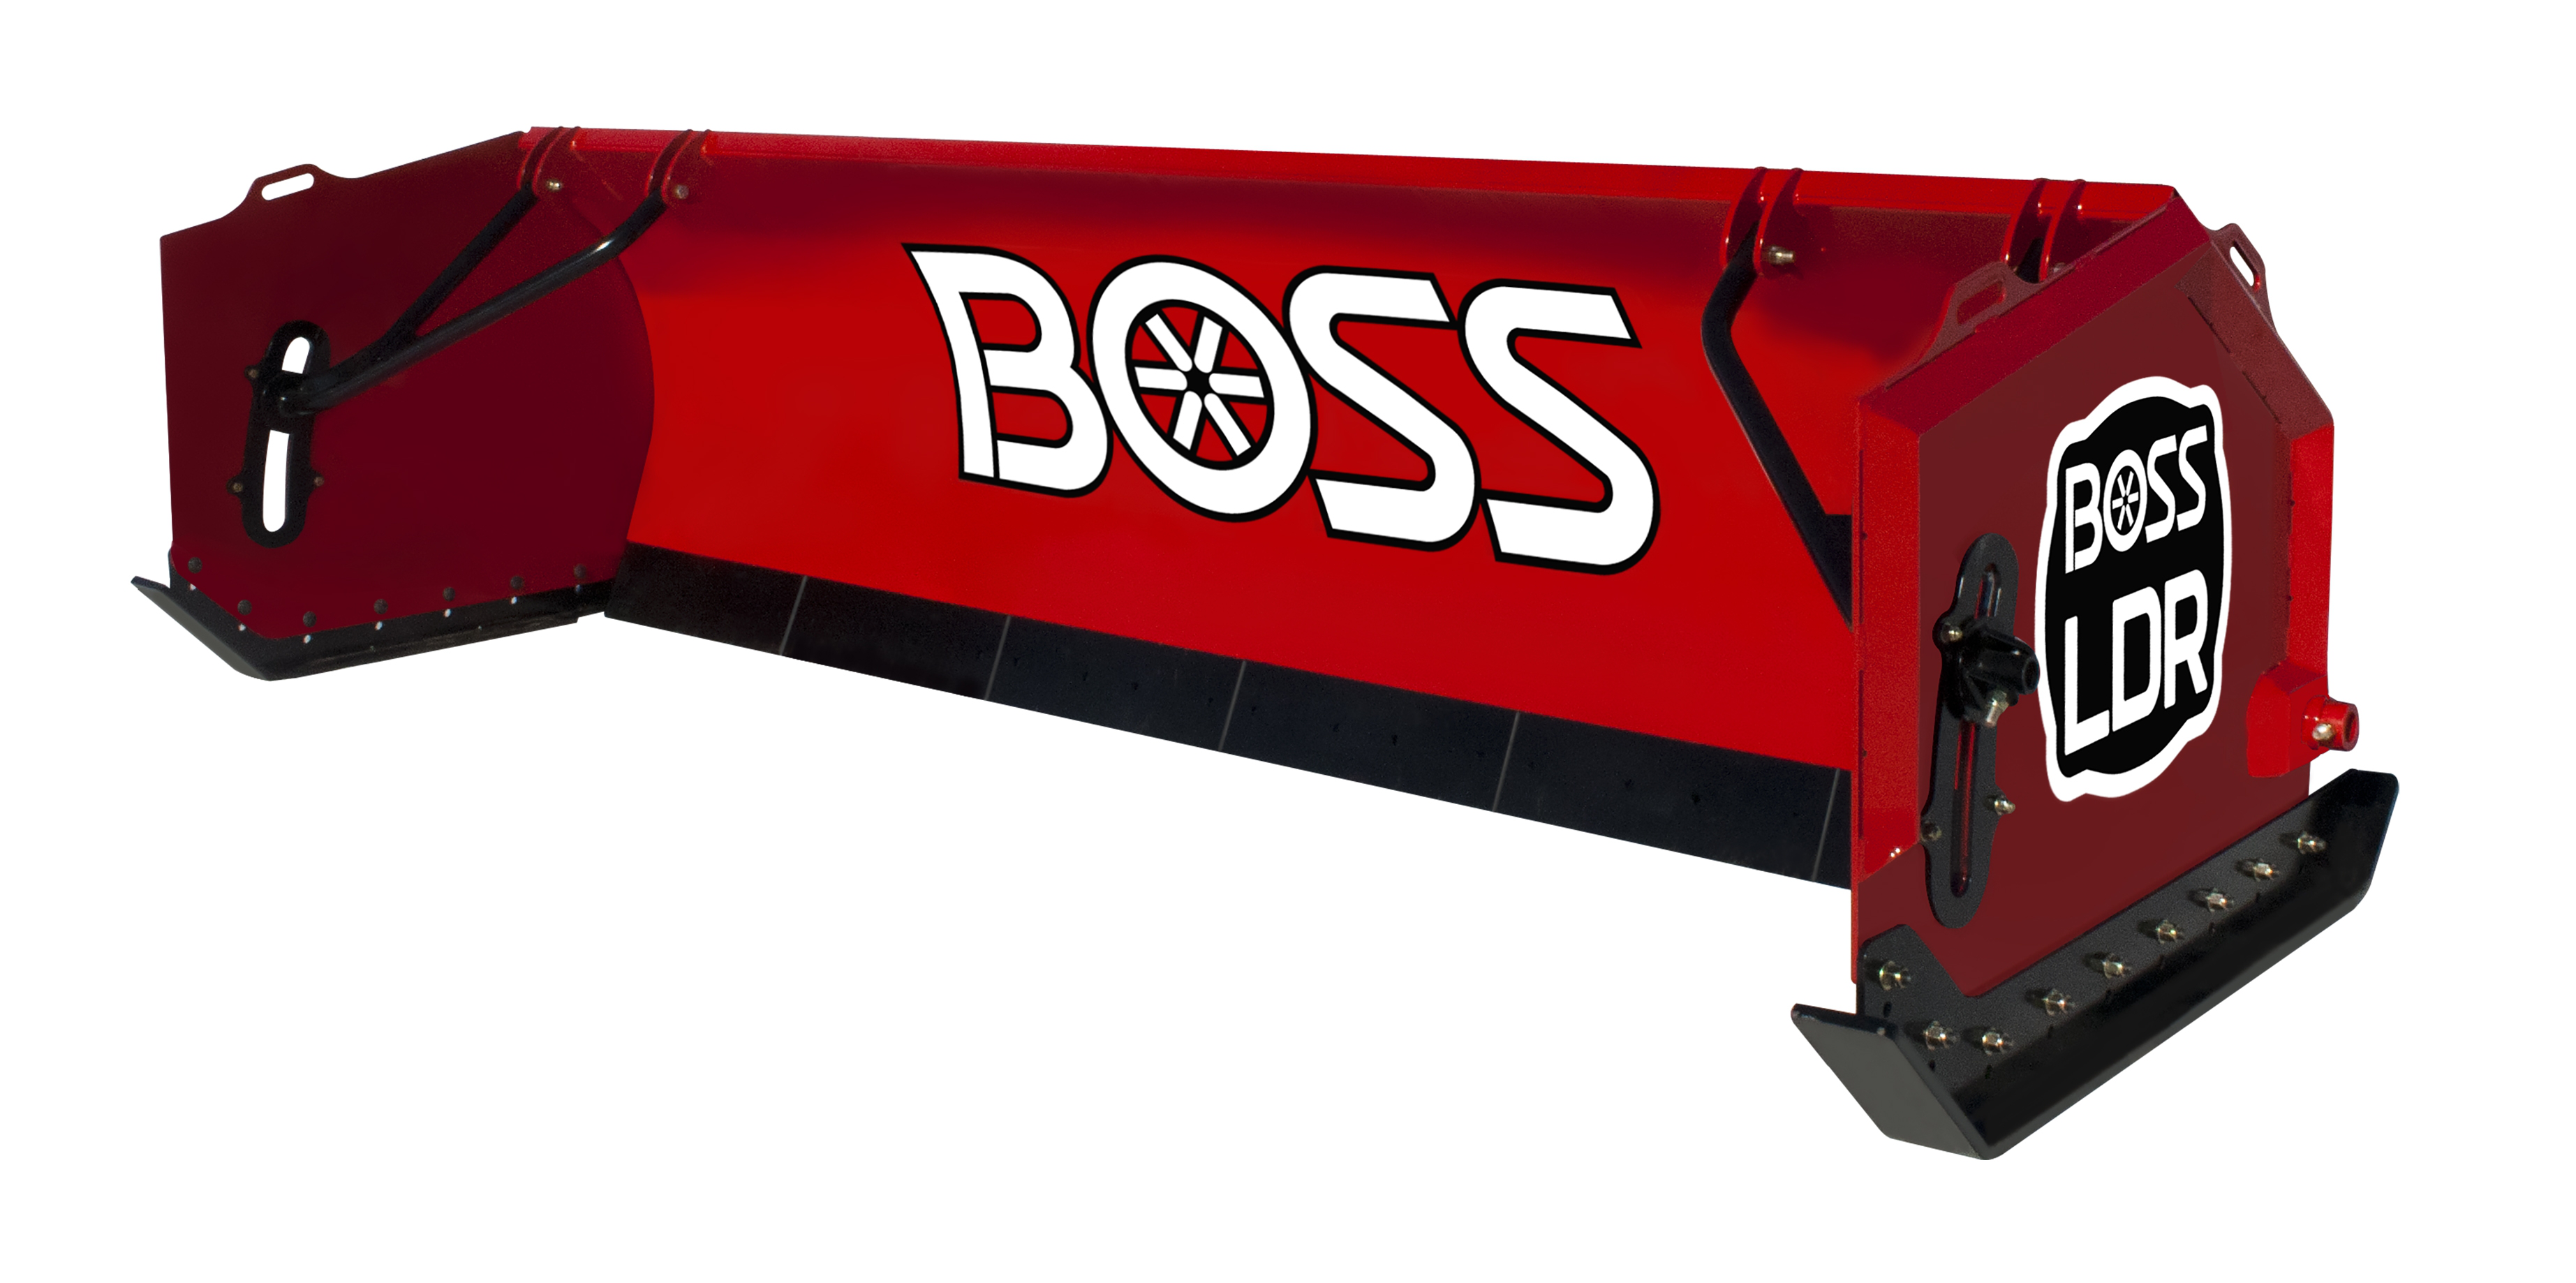 LDR_Box_Plow best of diagram boss plow spreader download more maps, diagram,Wiring Diagram 15kw Standby Generator Here Is The Pleted